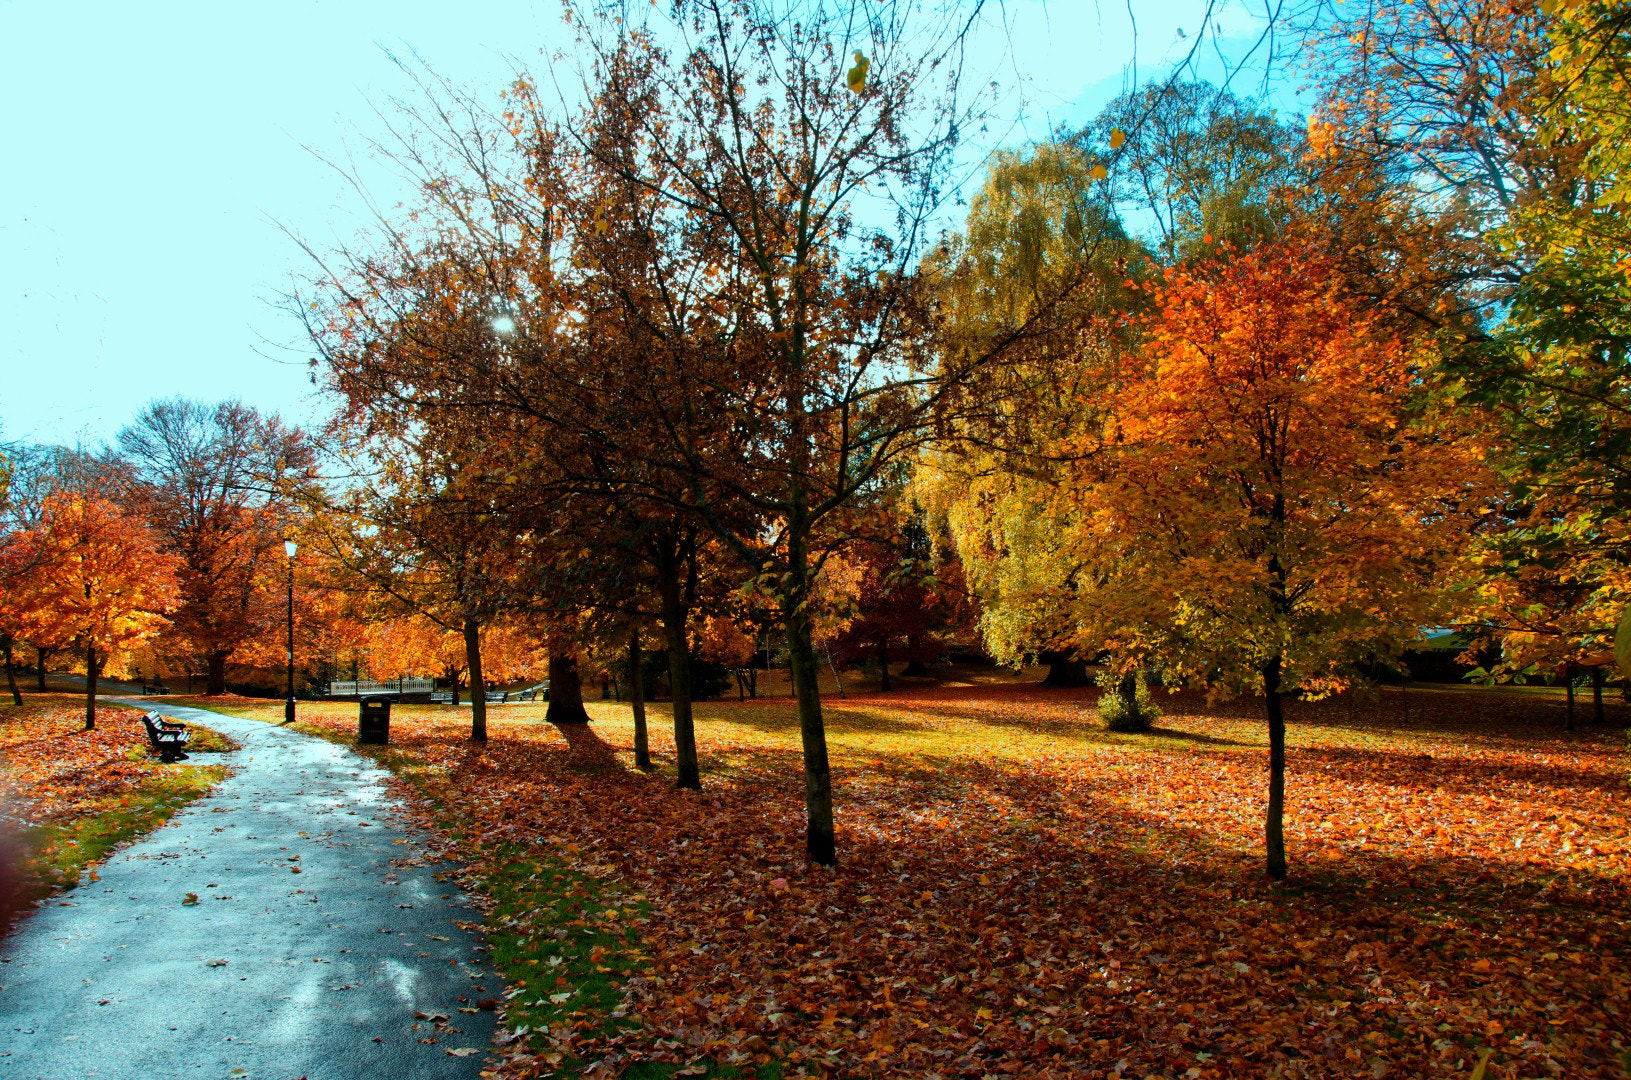 Photograph A Walk In The Park by Phil Robson on 500px